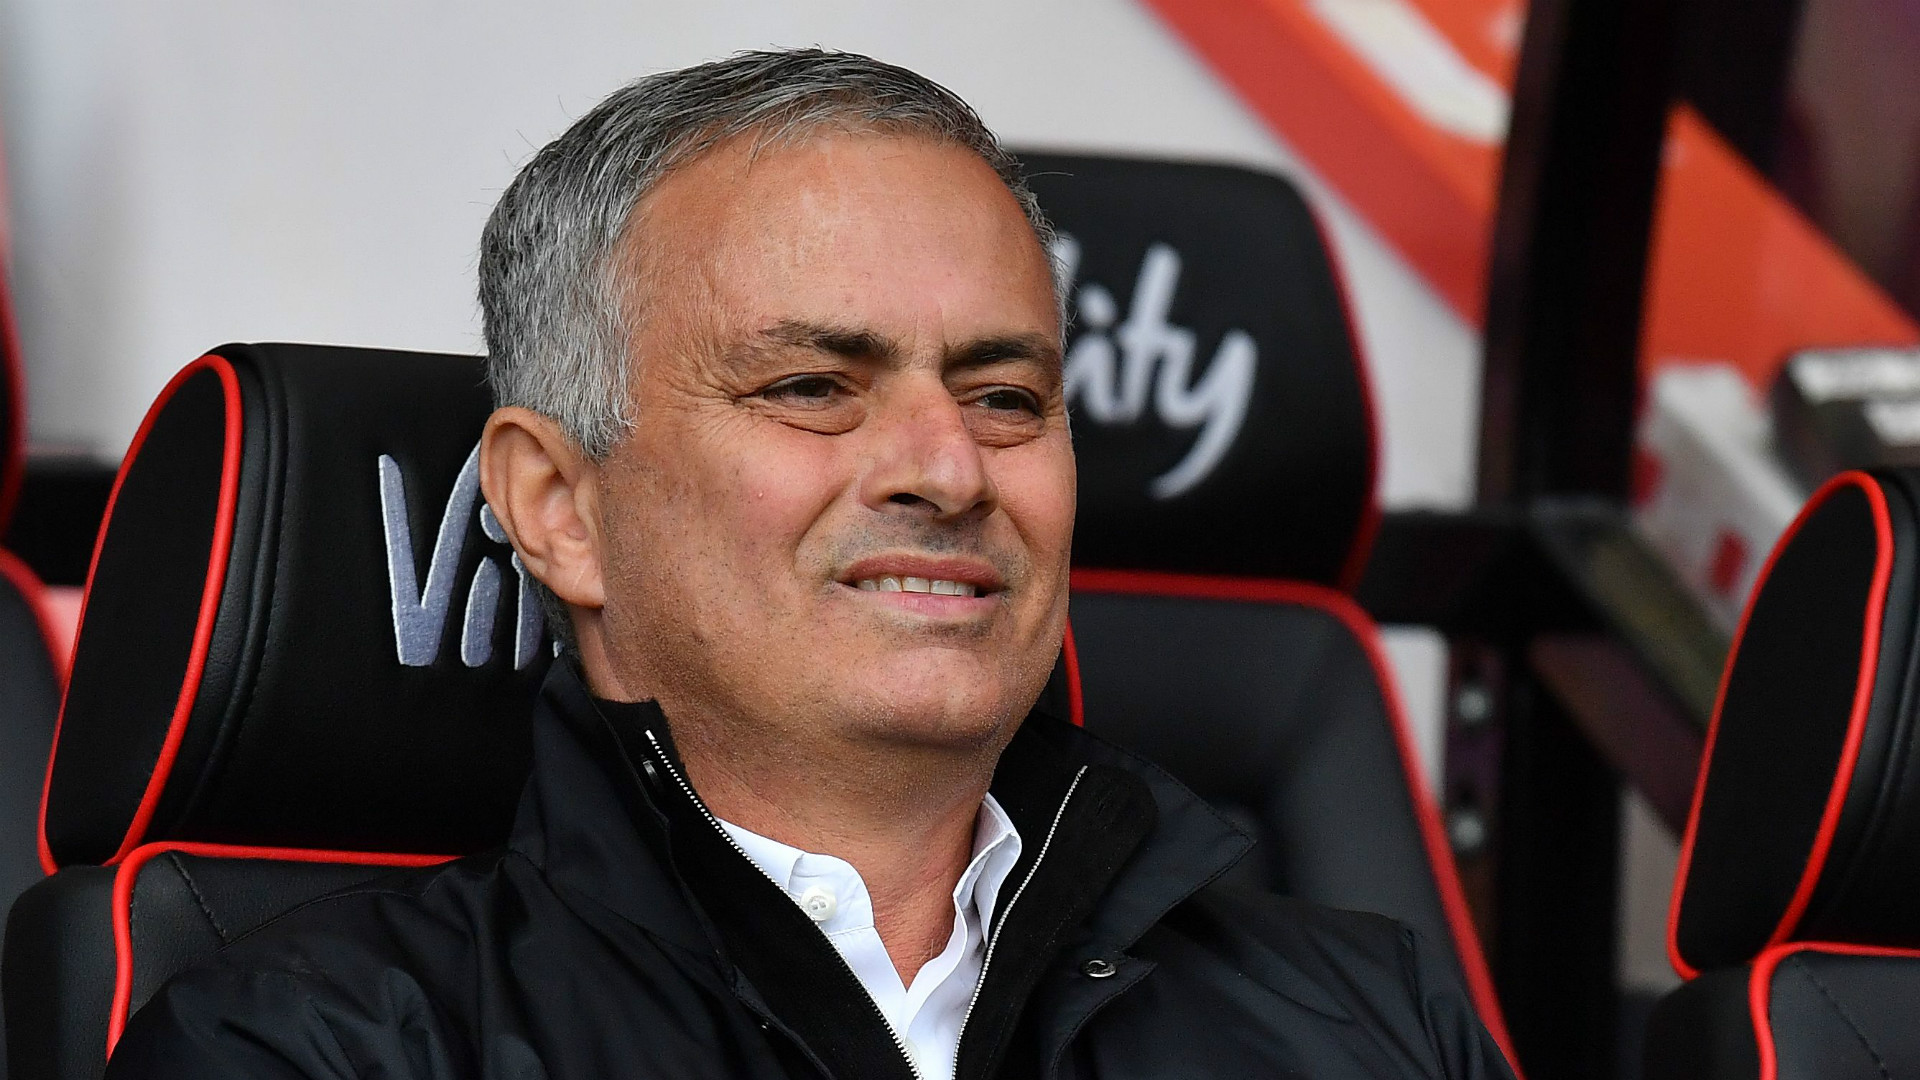 Man Utd boss Mourinho: Bournemouth could've scored six before halftime